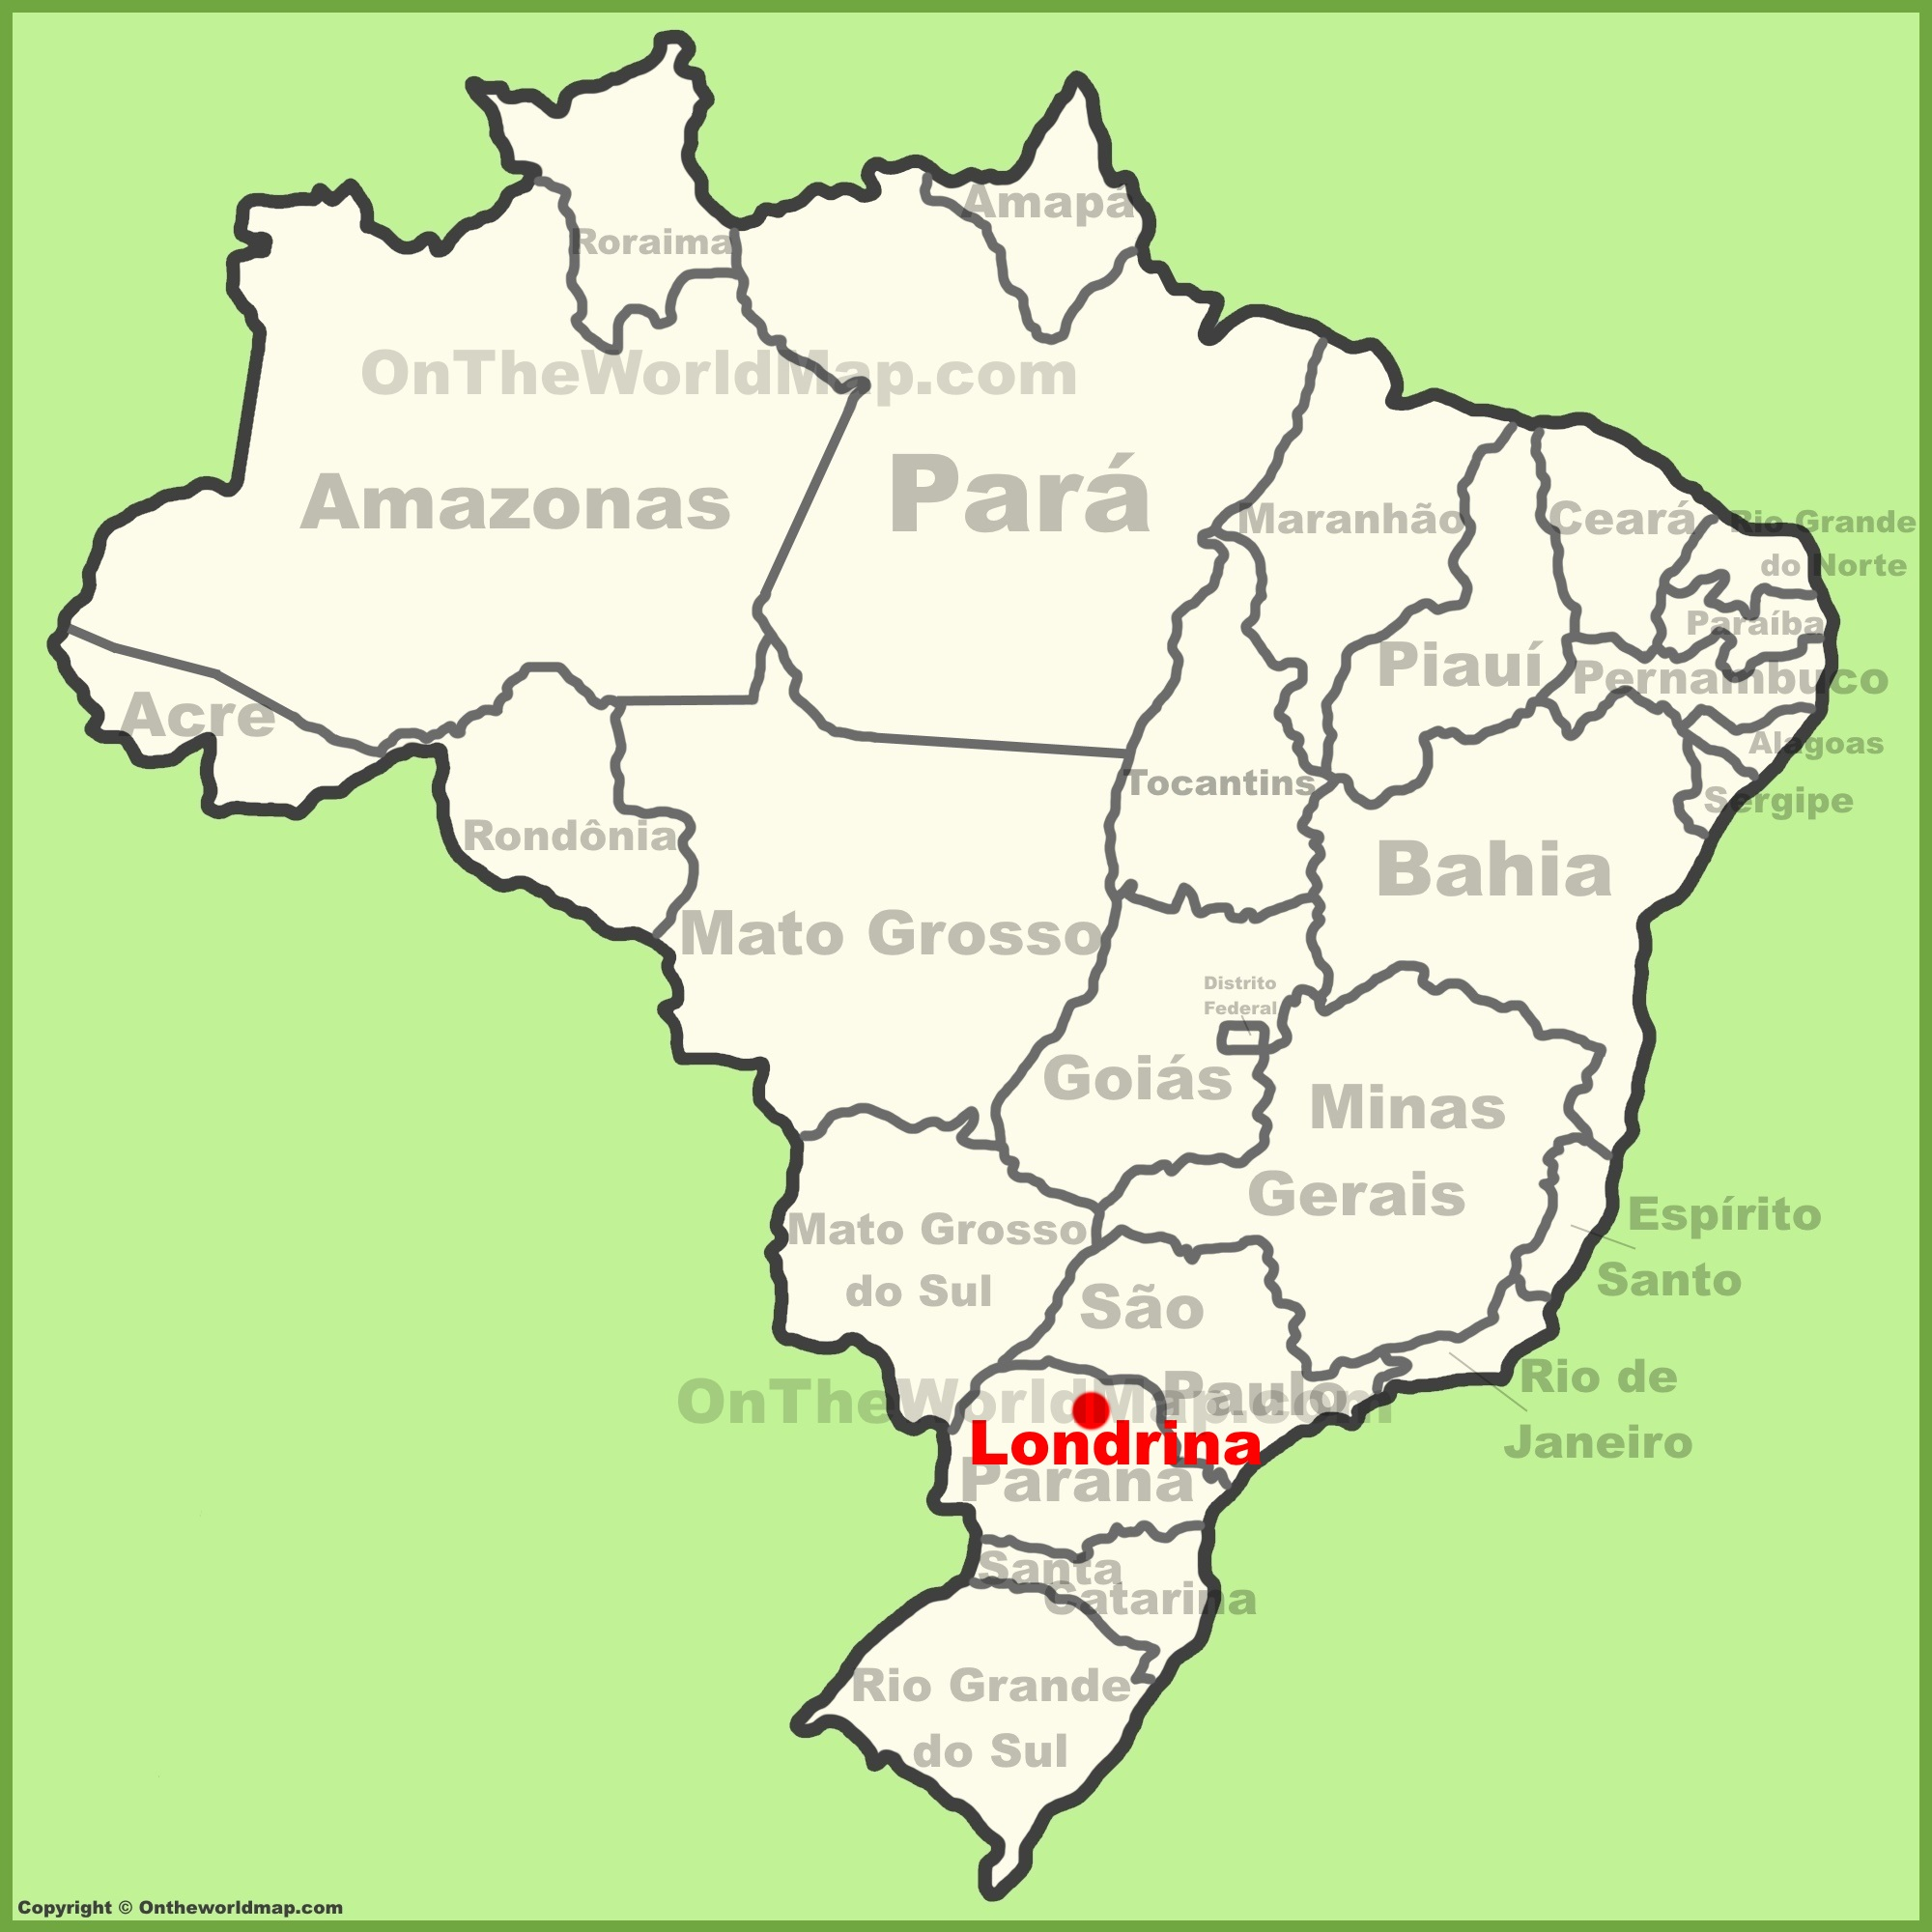 Londrina location on the Brazil map